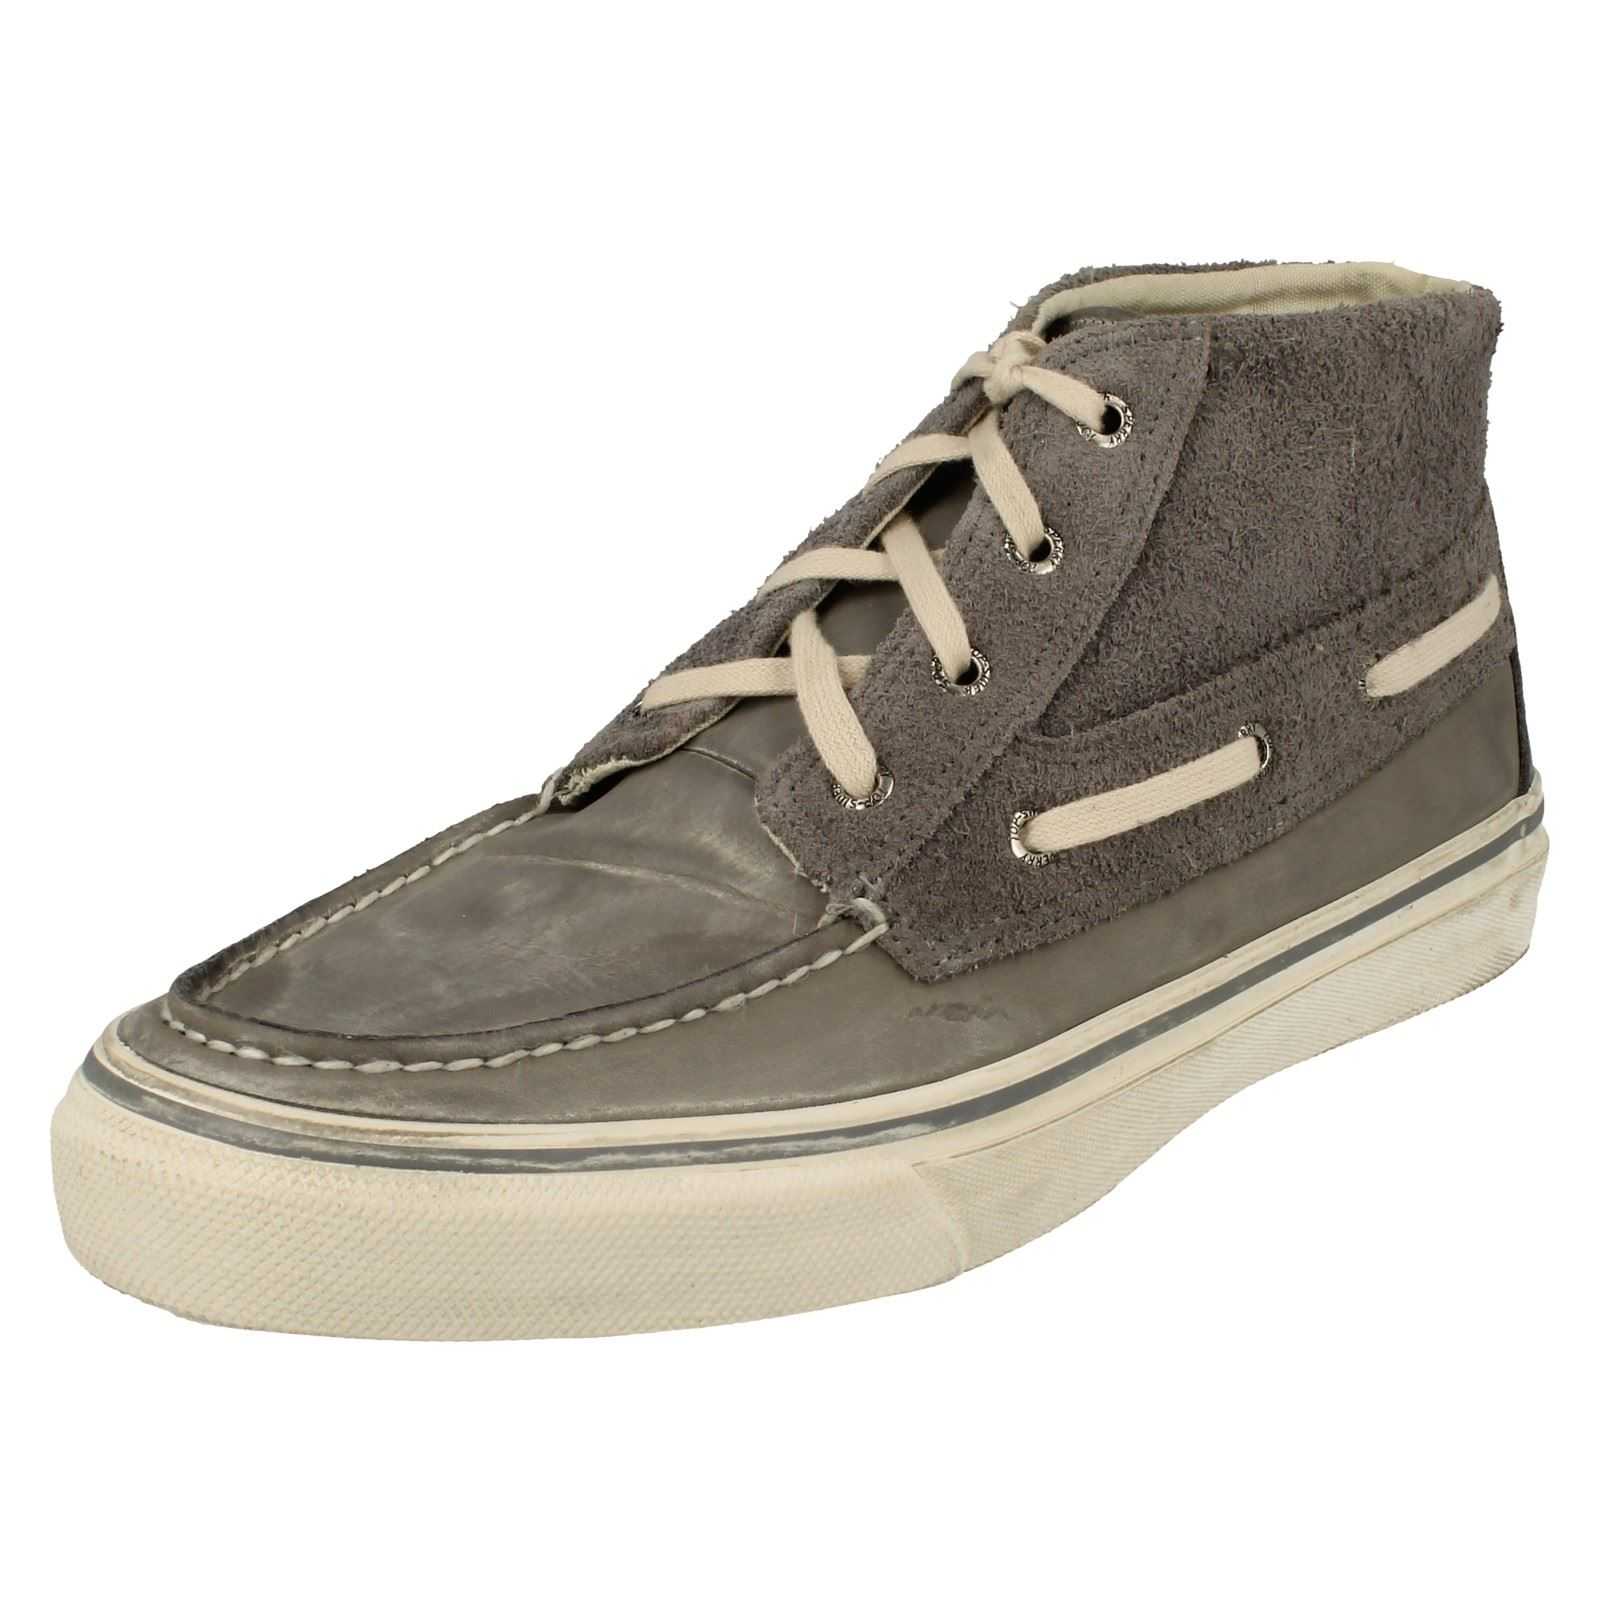 Mens Sperry Ankle Boots Bahama Chukka